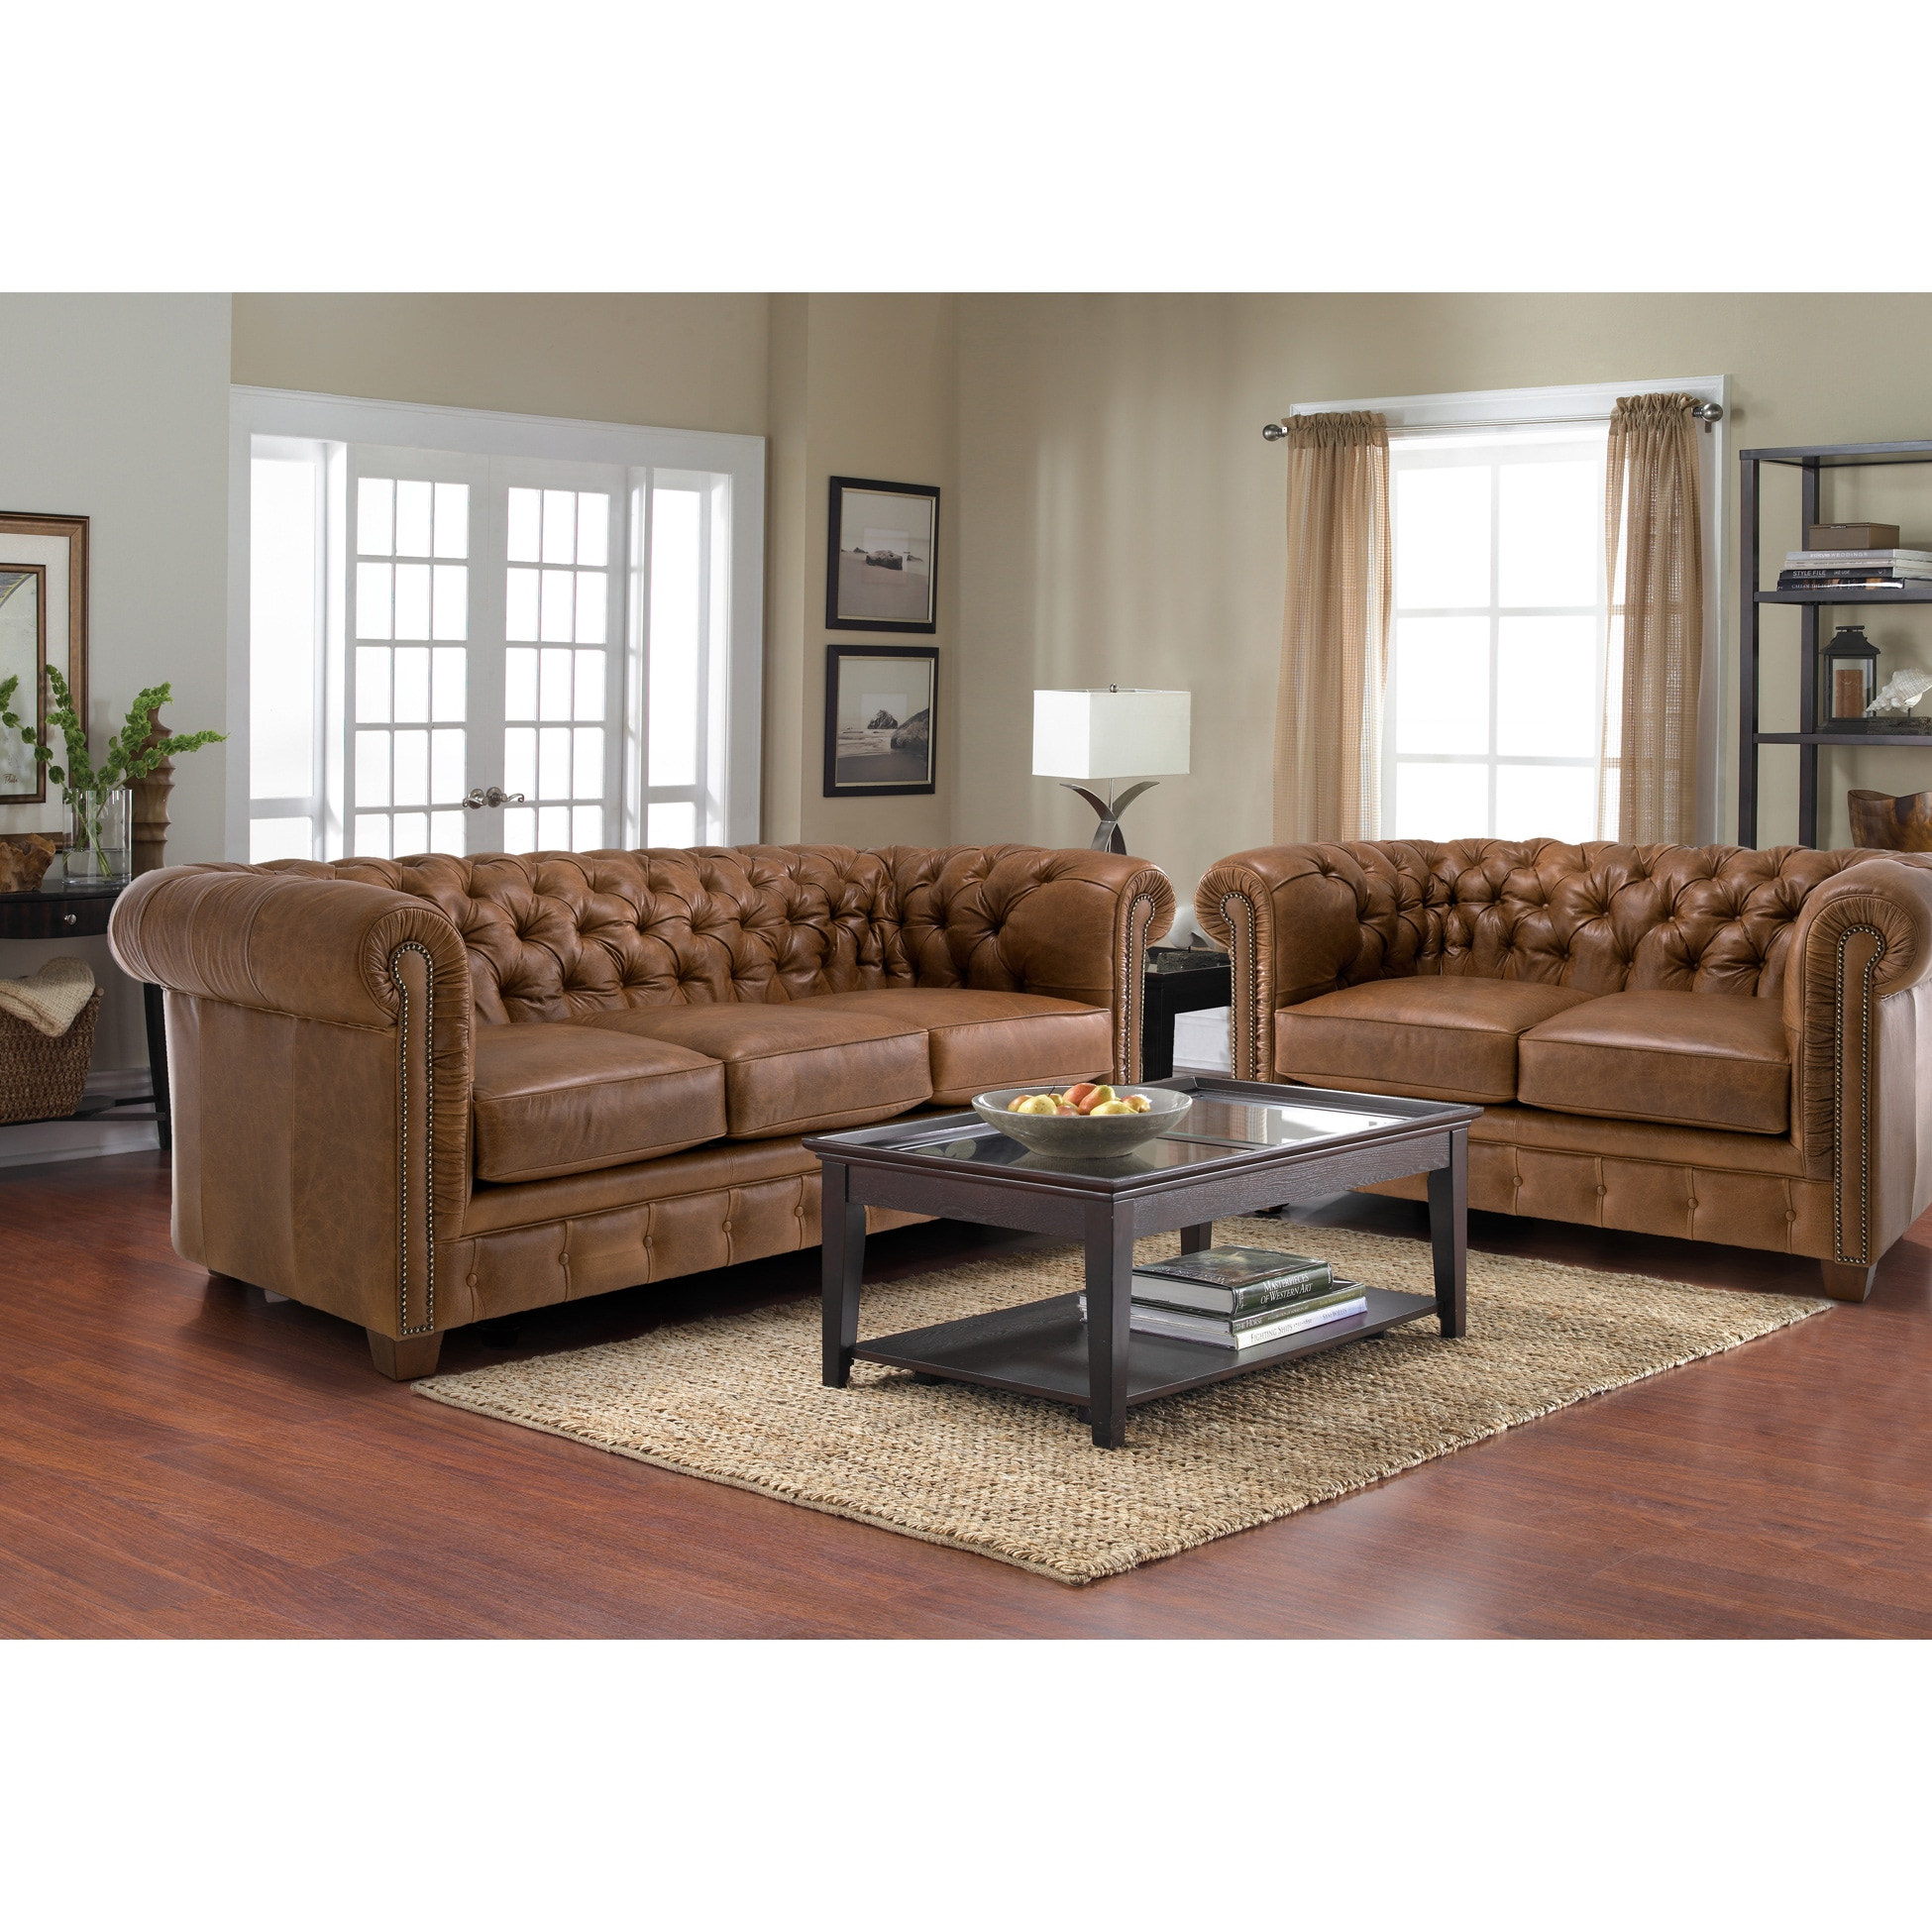 Hancock Tufted Distressed Brown Leather Chesterfield Living Room Sofa Set